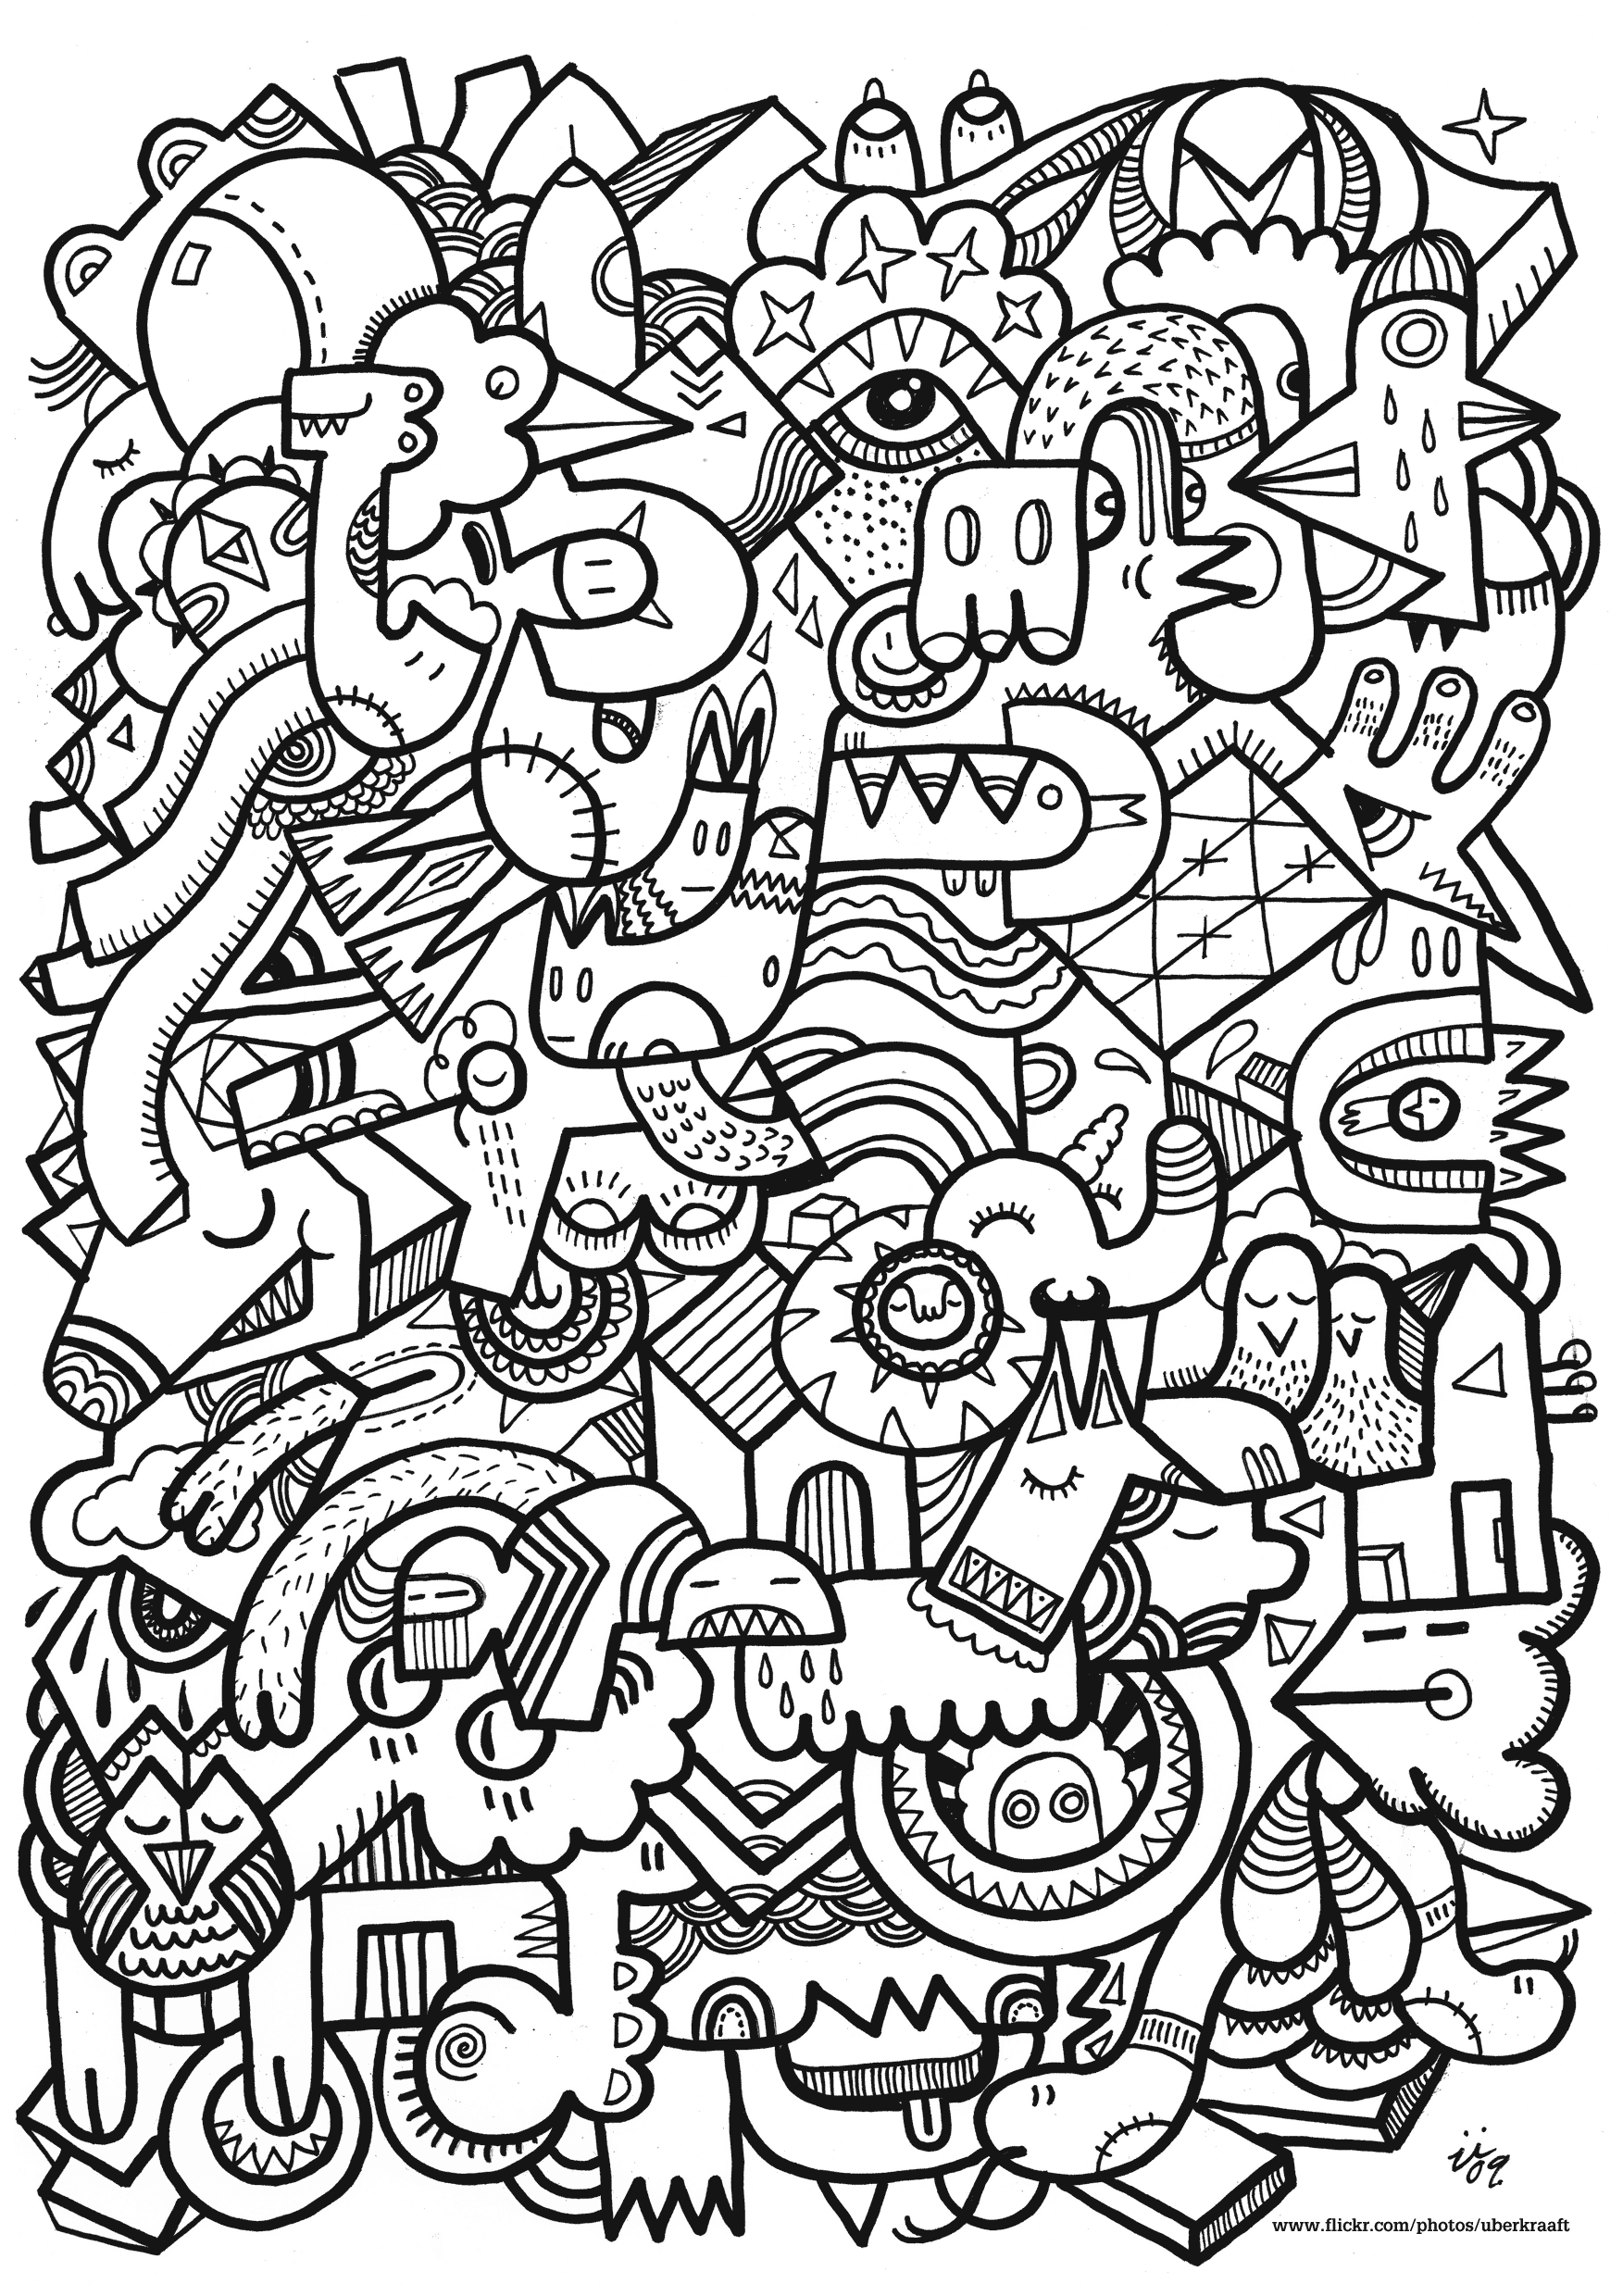 Coloring pages patterns - Patterns Difficult Colouring Pages